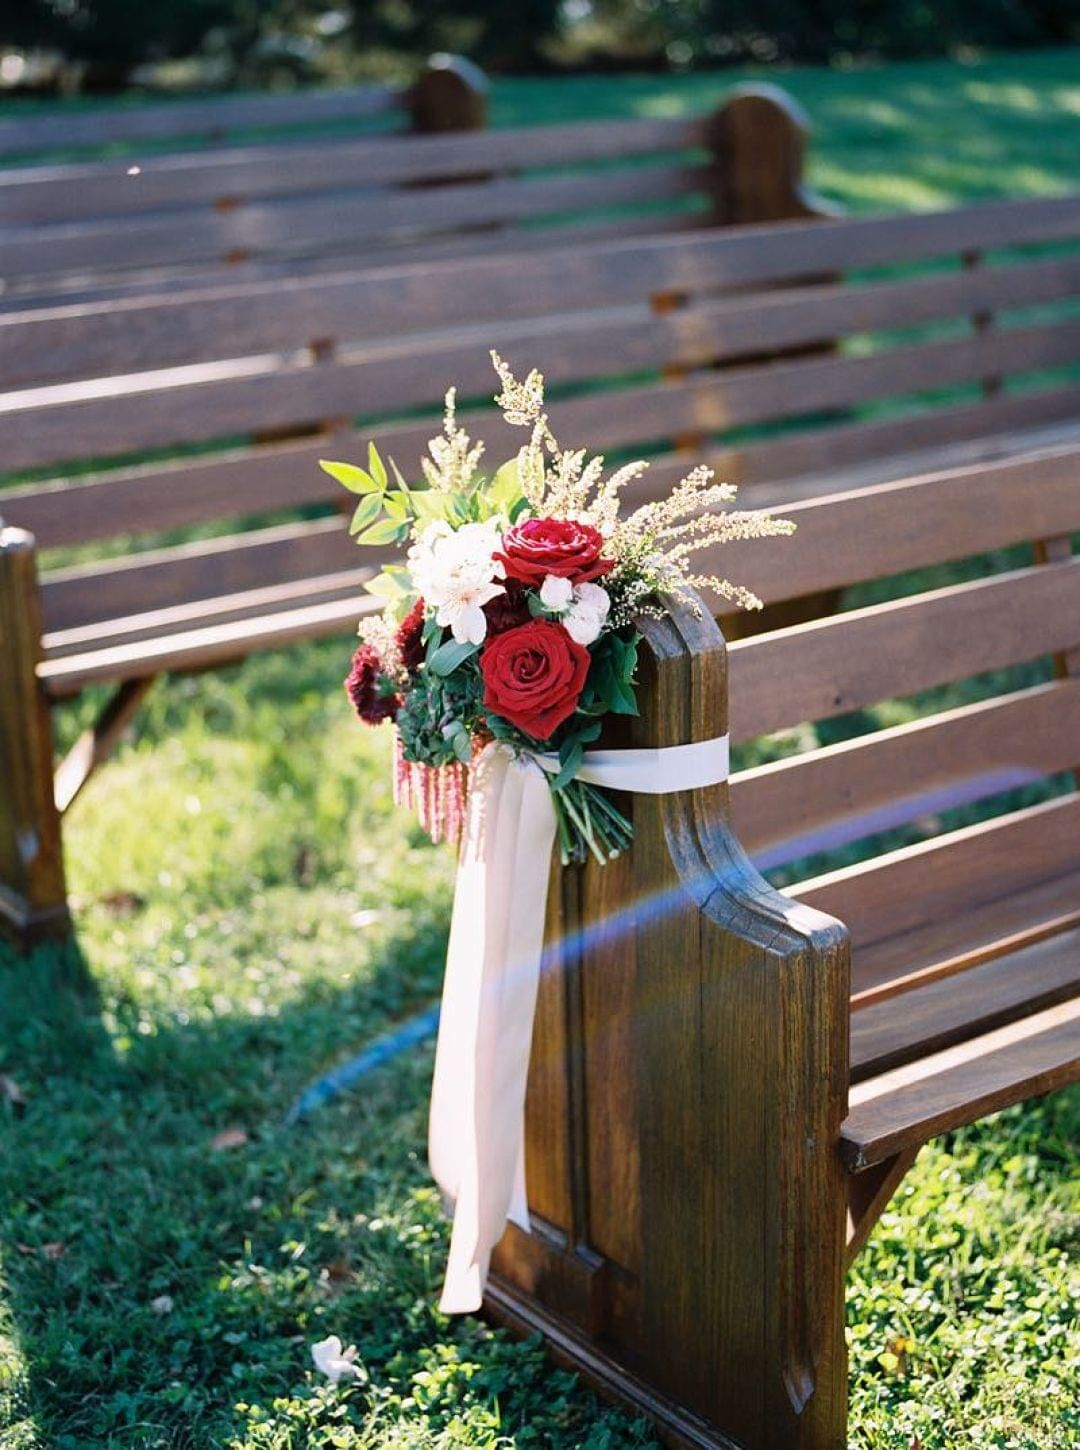 Church benches, red roses, reception décor, outdoor wedding, white ribbon, astilbe // Jenna Henderson